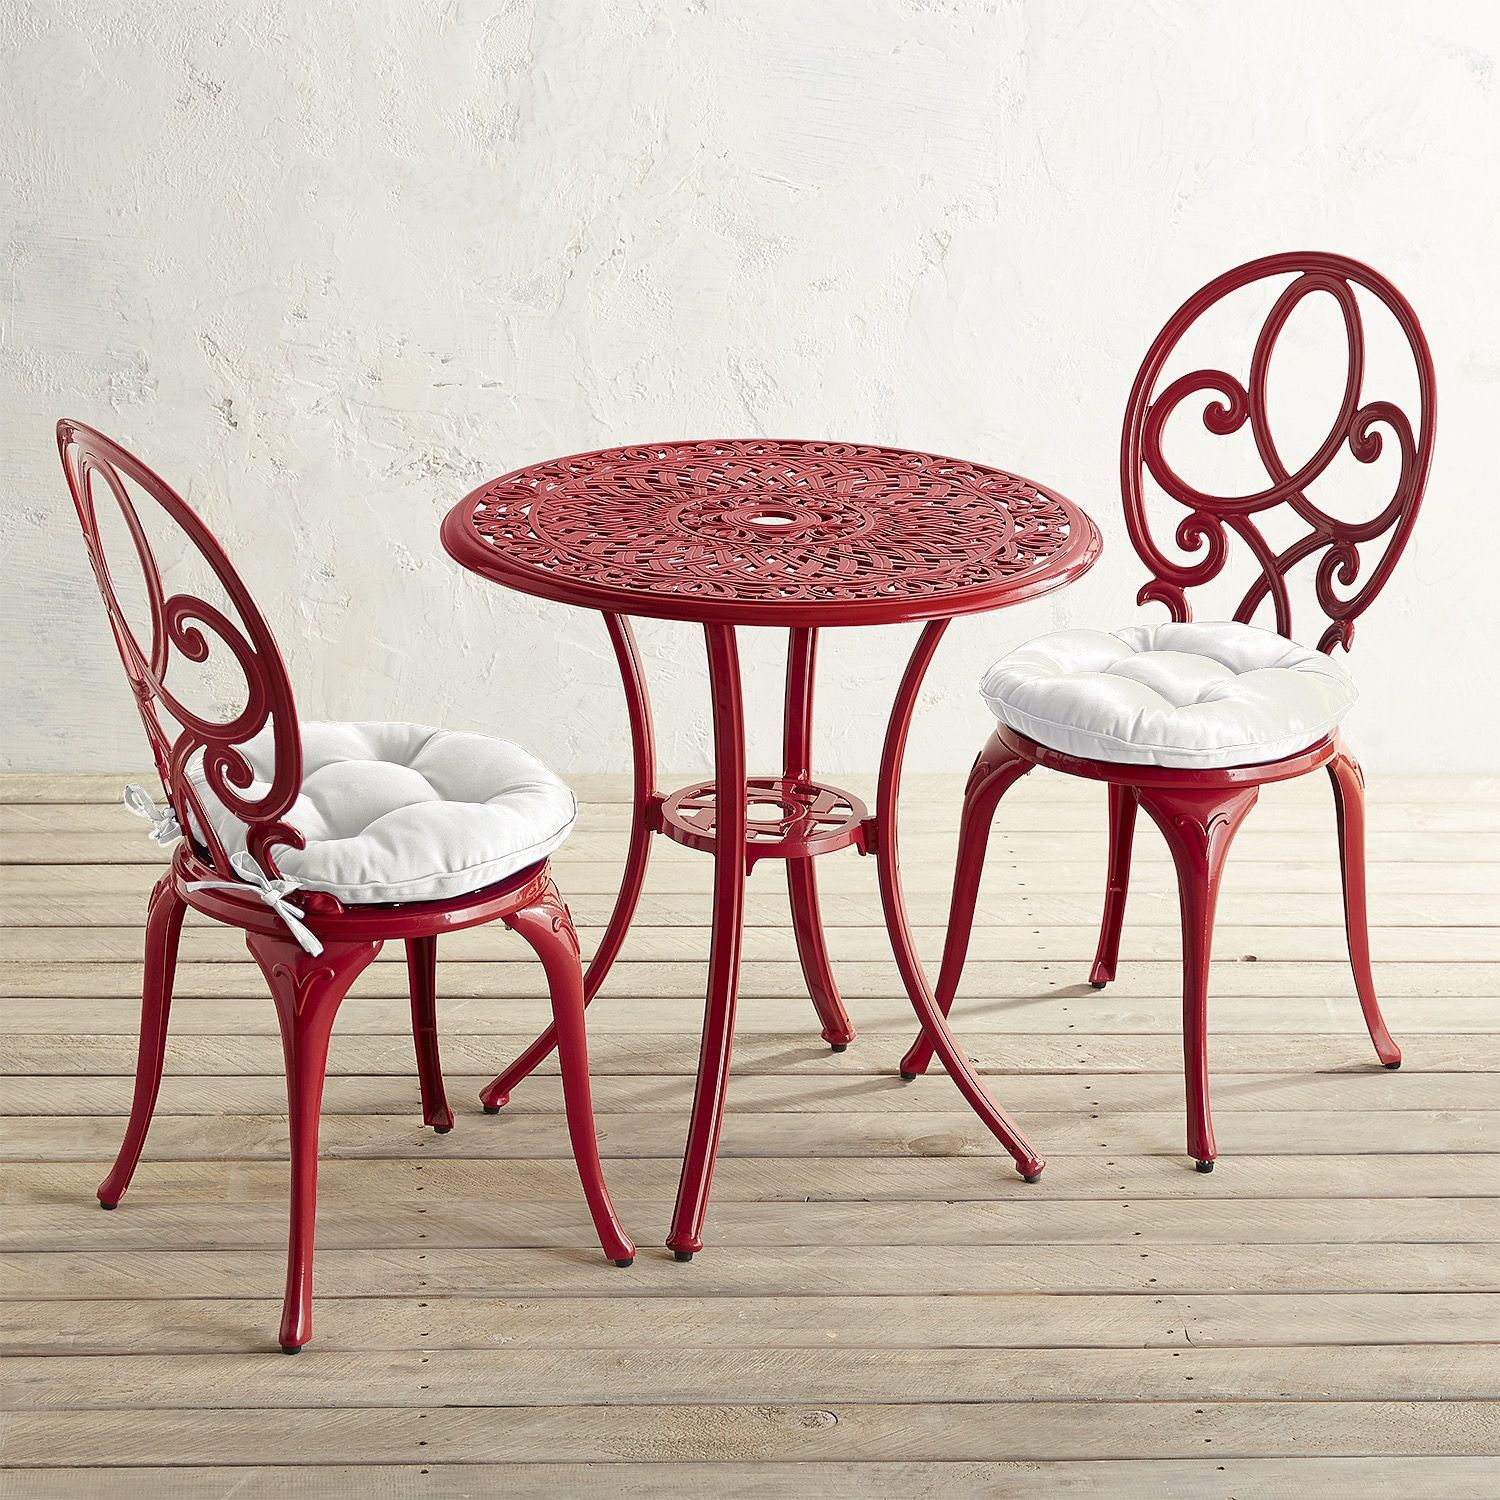 Dahlia Red Cast Aluminum Bistro Set Bistro Set Patio Furniture